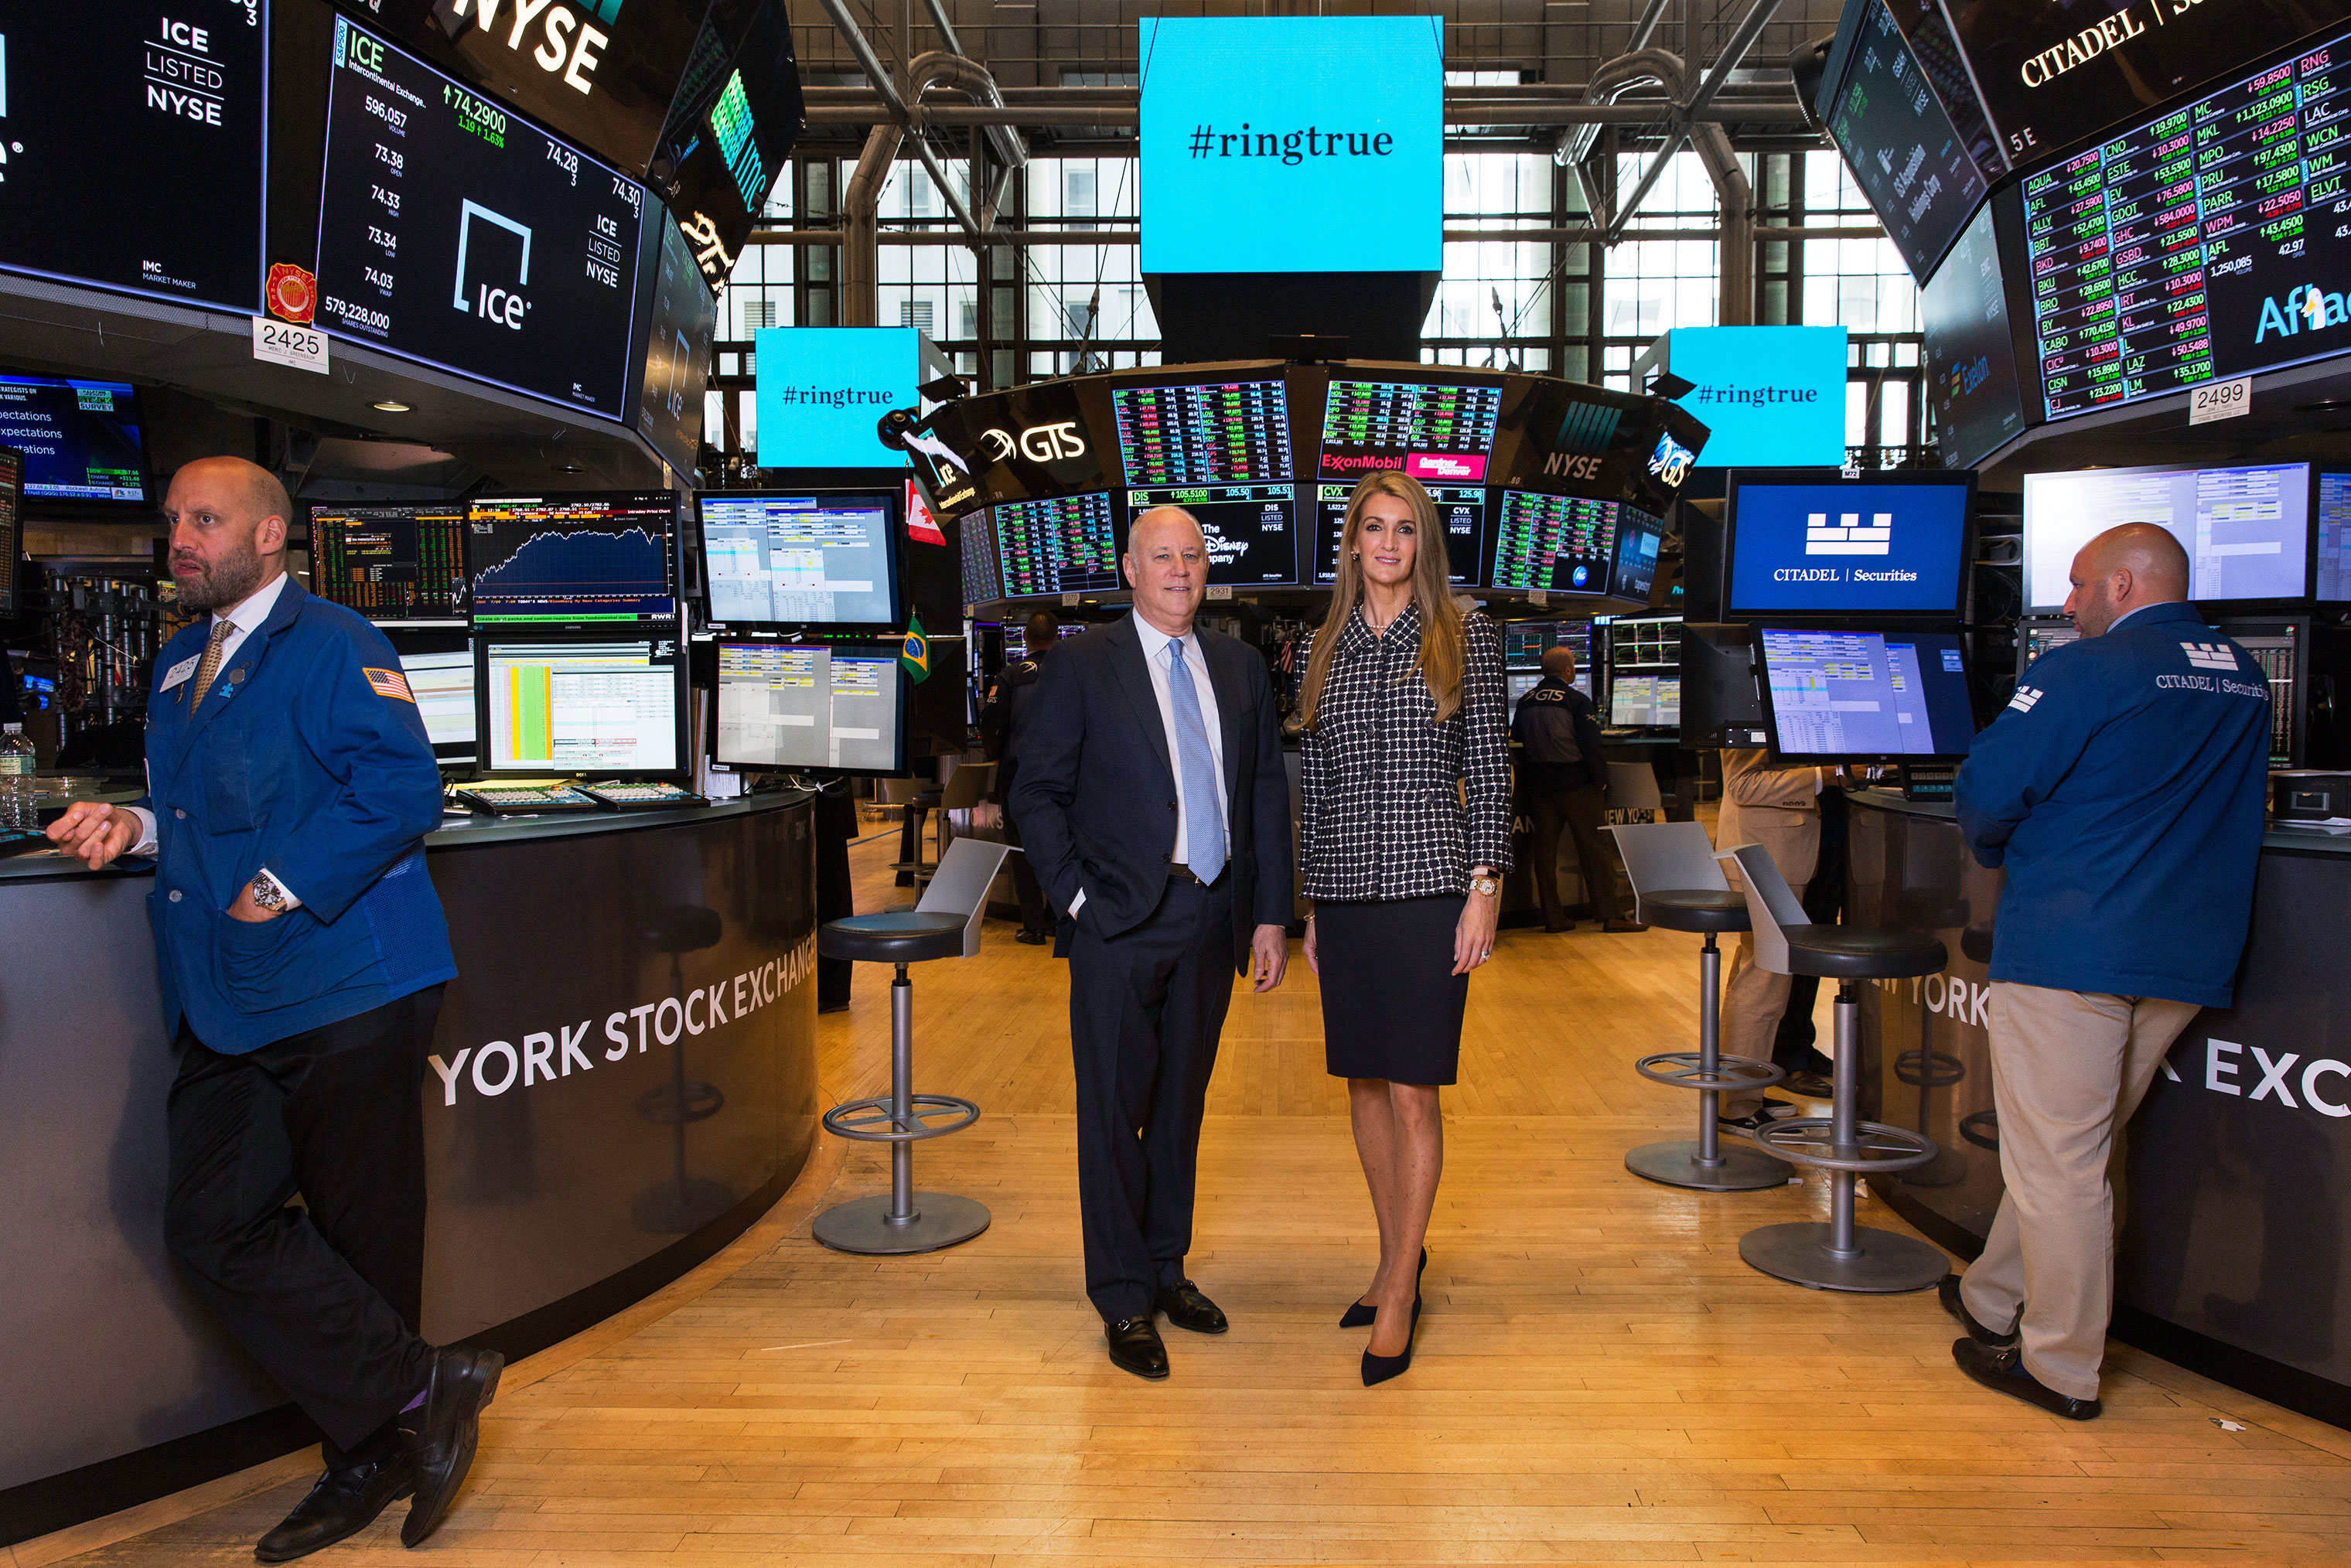 Jeff Sprecher, Intercontinental Exchange chairman and CEO, with his wife Kelly Loeffler, an ICE executive who will be CEO of the startup Bakkt, on the trading floor of the NYSE on July 9, 2018.